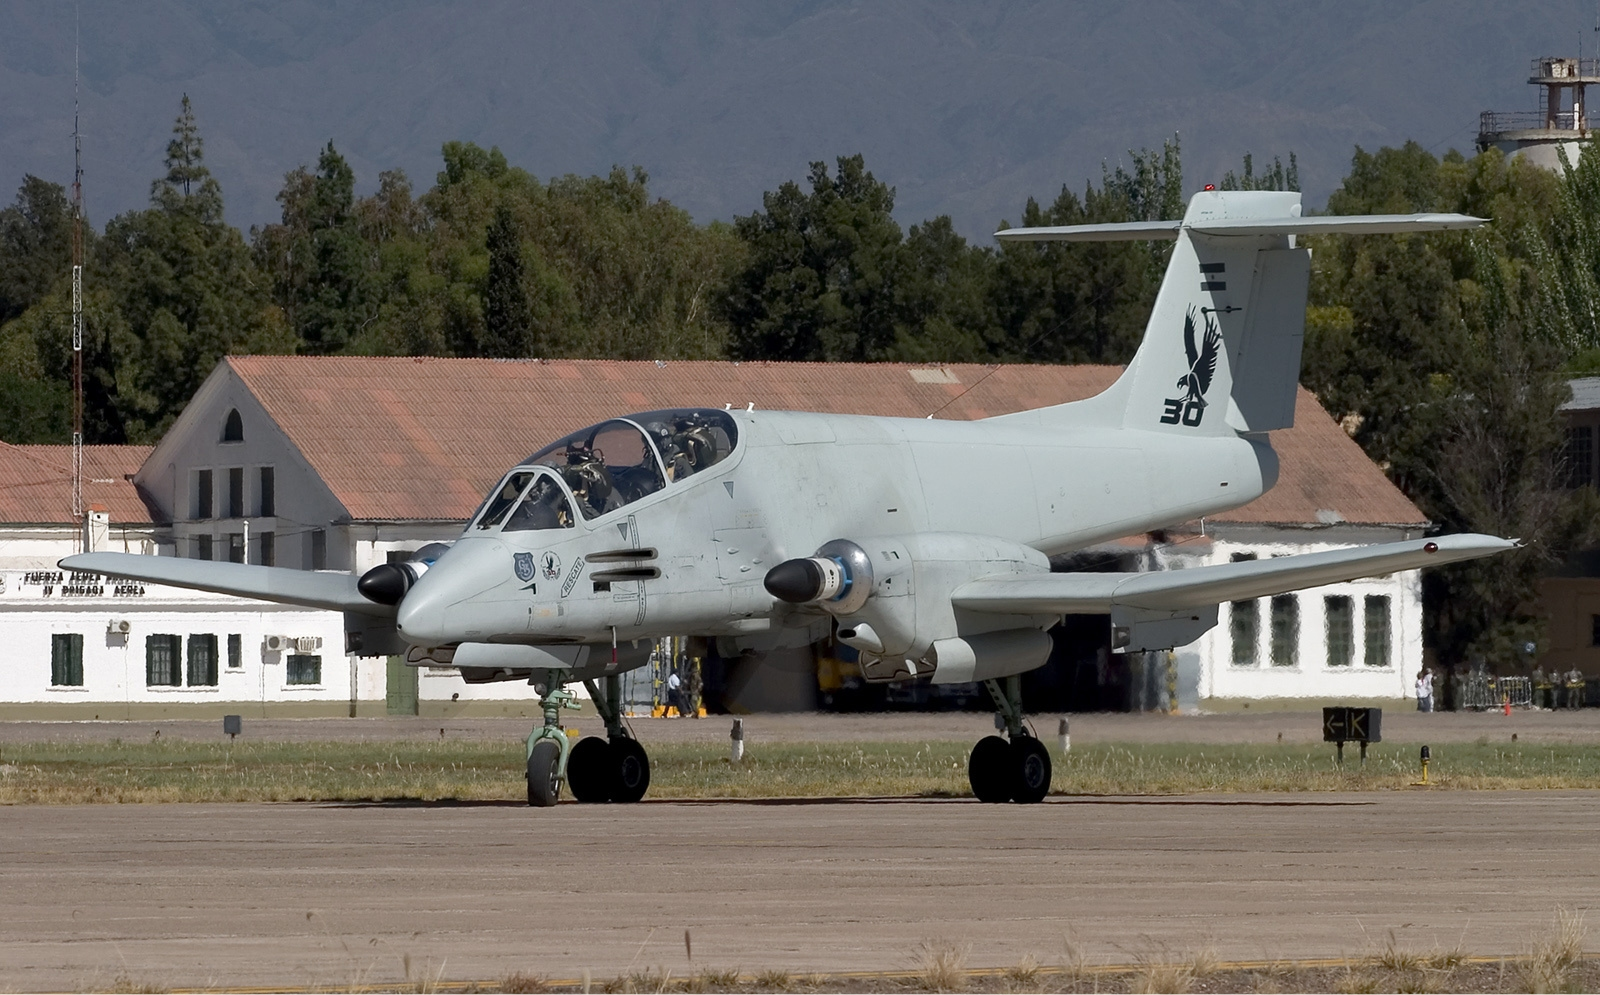 Argentina_Air_Force_FMA_IA-58A_Pucara_Lofting-4